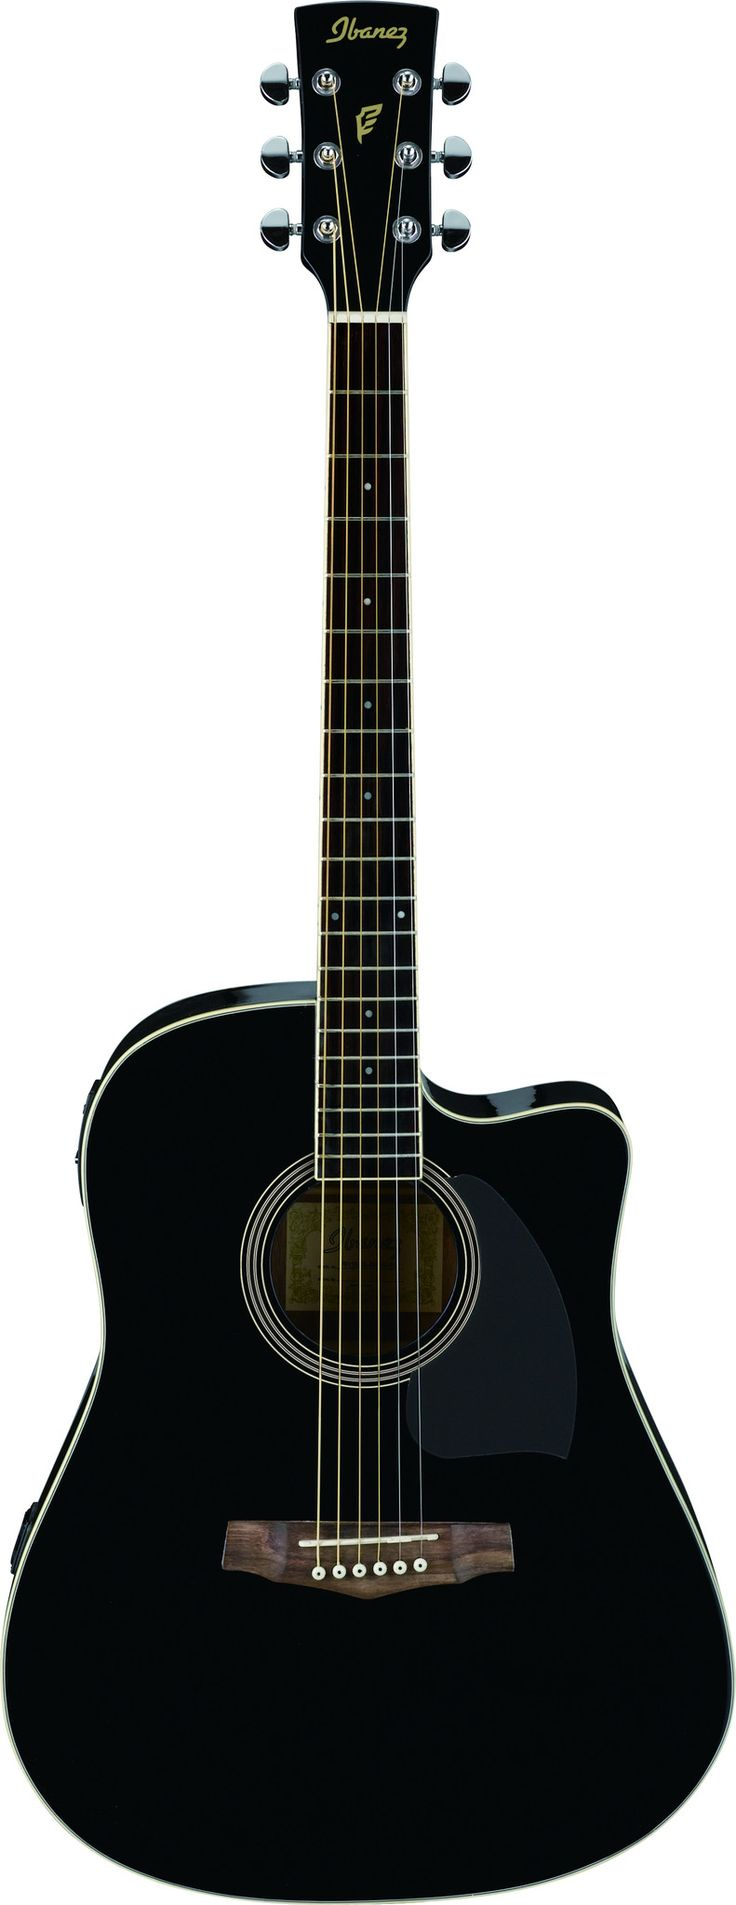 ibanez pf15ece dreadnought acoustic electric guitar products learn acoustic guitar electric. Black Bedroom Furniture Sets. Home Design Ideas